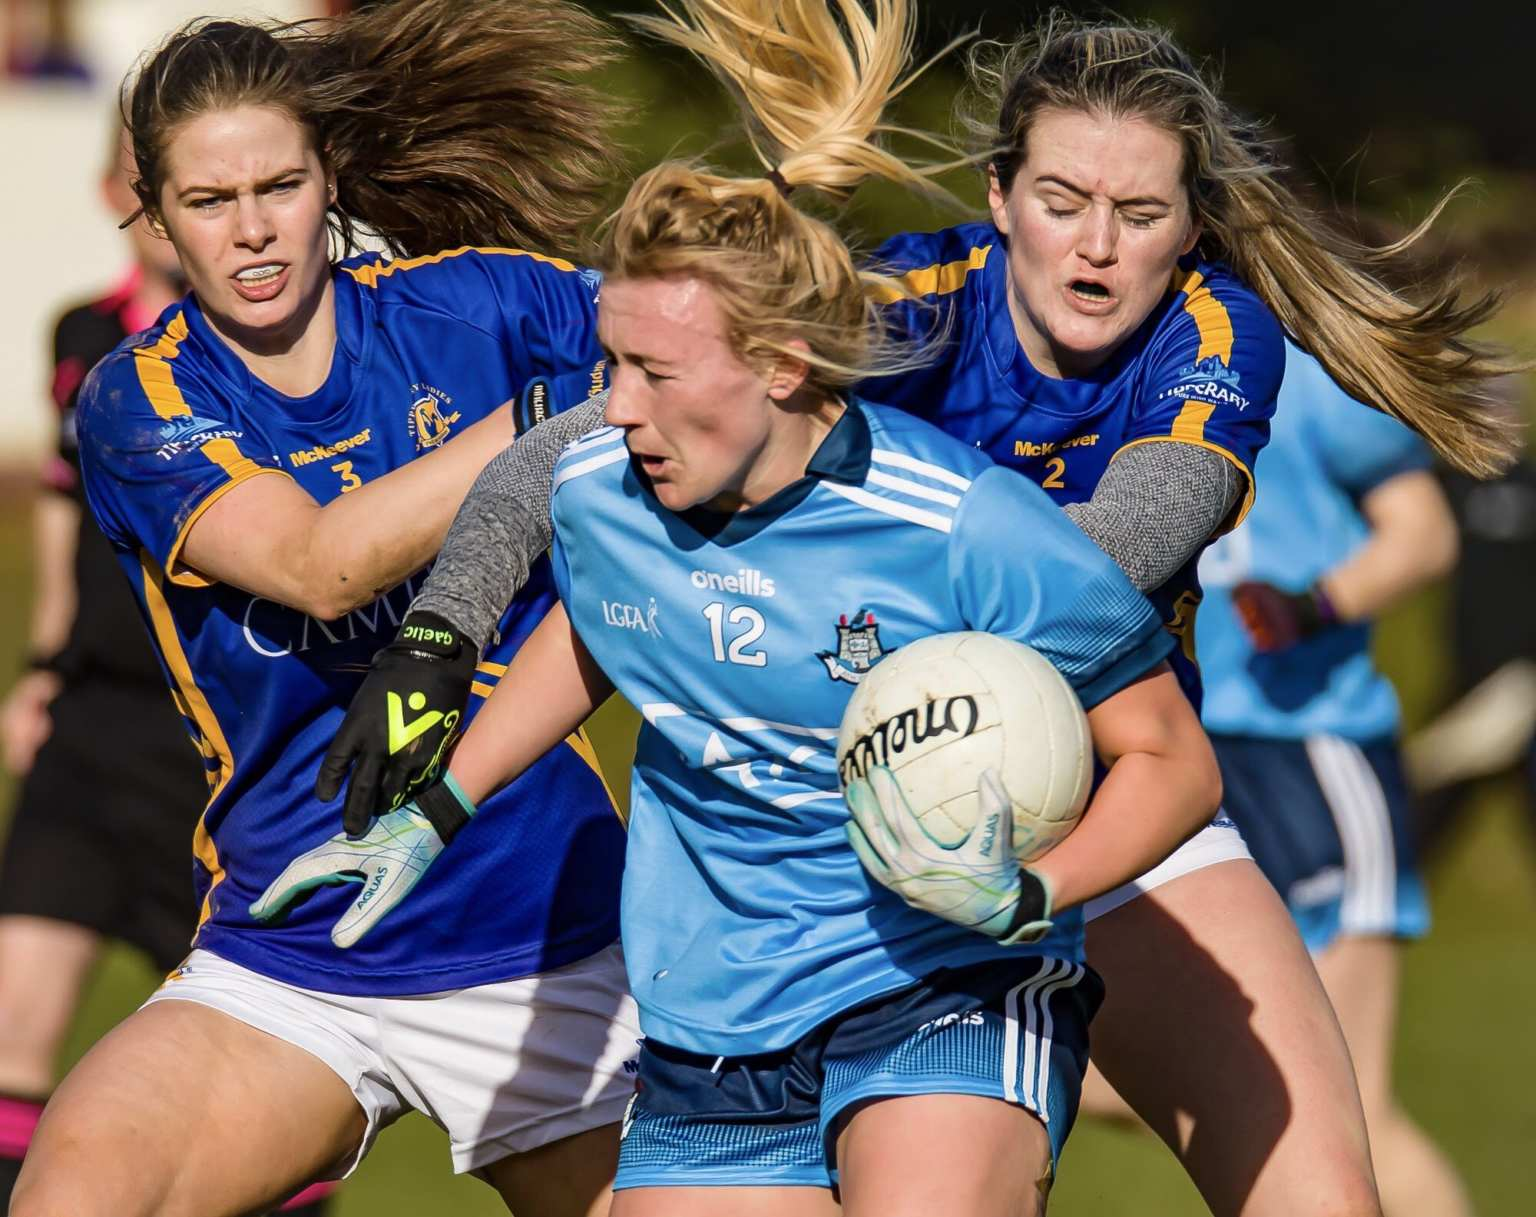 A Dublin ladies Footballer is tackled by two Tipperary players, both teams meet in the opening round of the 2020 Lidl Ladies NFL